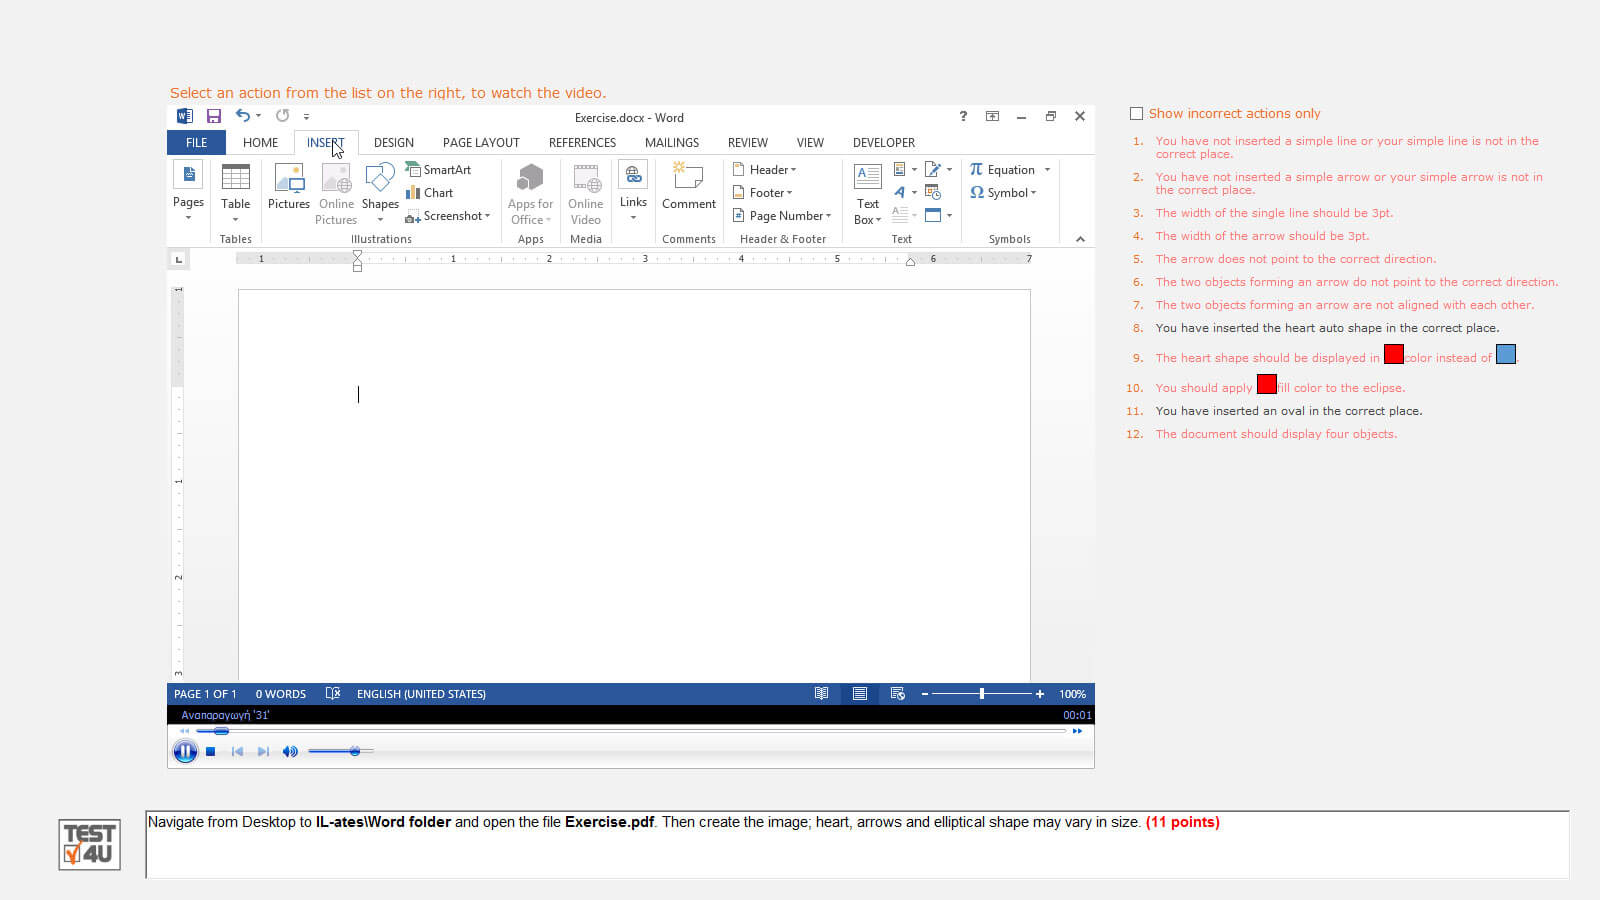 microsoft office word simulator